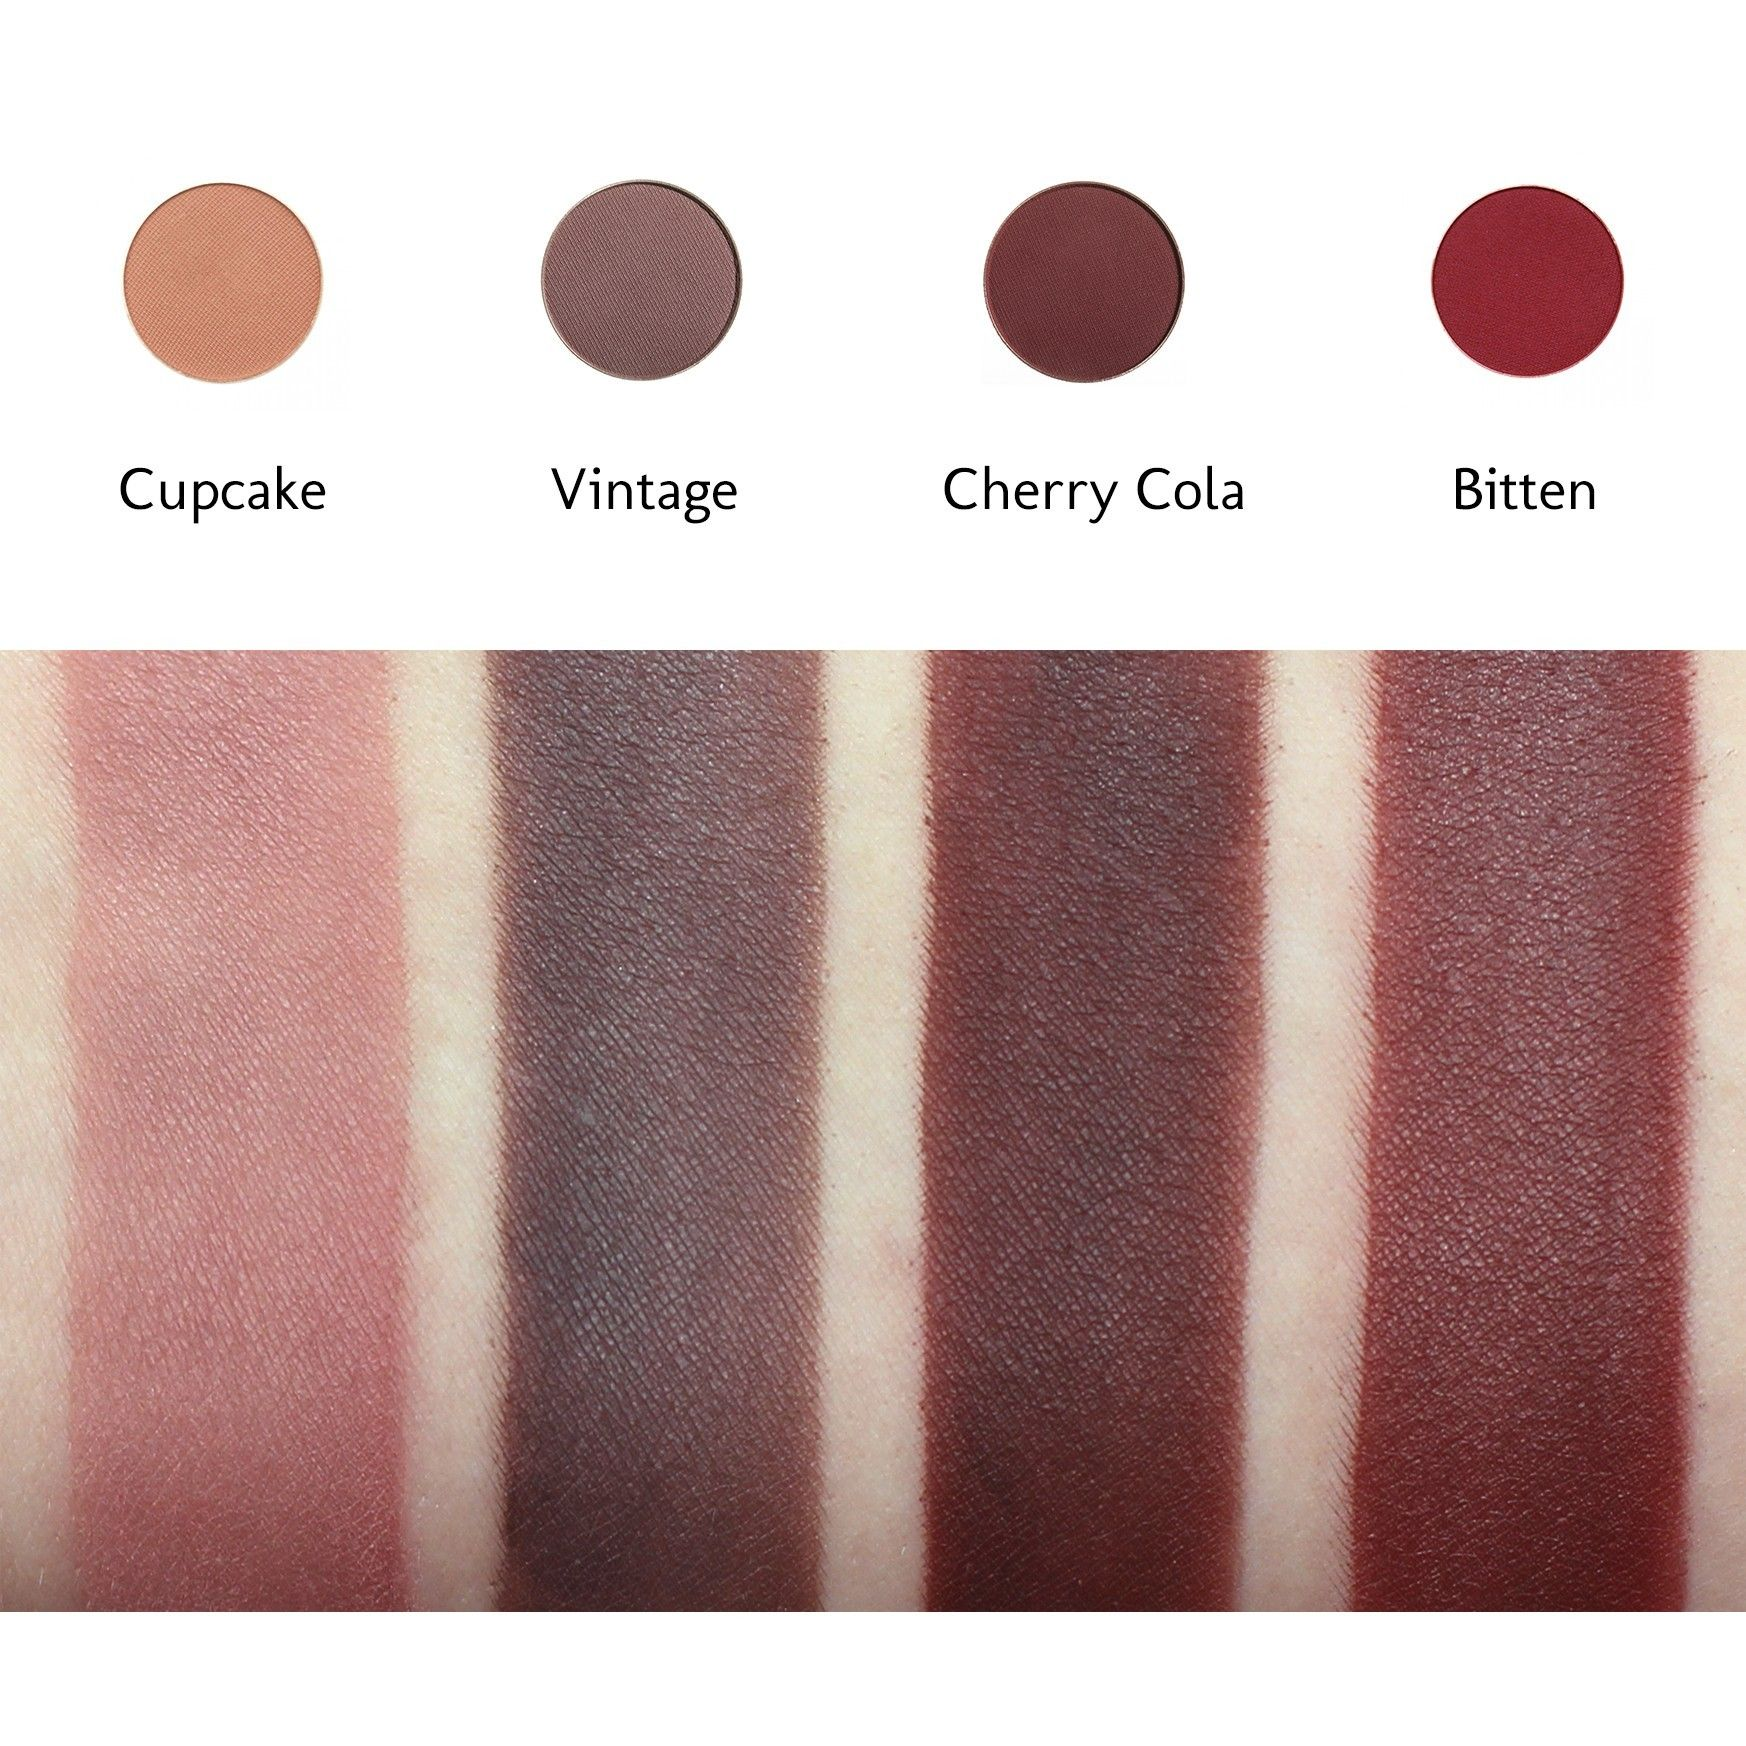 Cherry Cola Round Pan Makeup Geek Eyeshadow Makeup Geek Swatches Makeup Geek